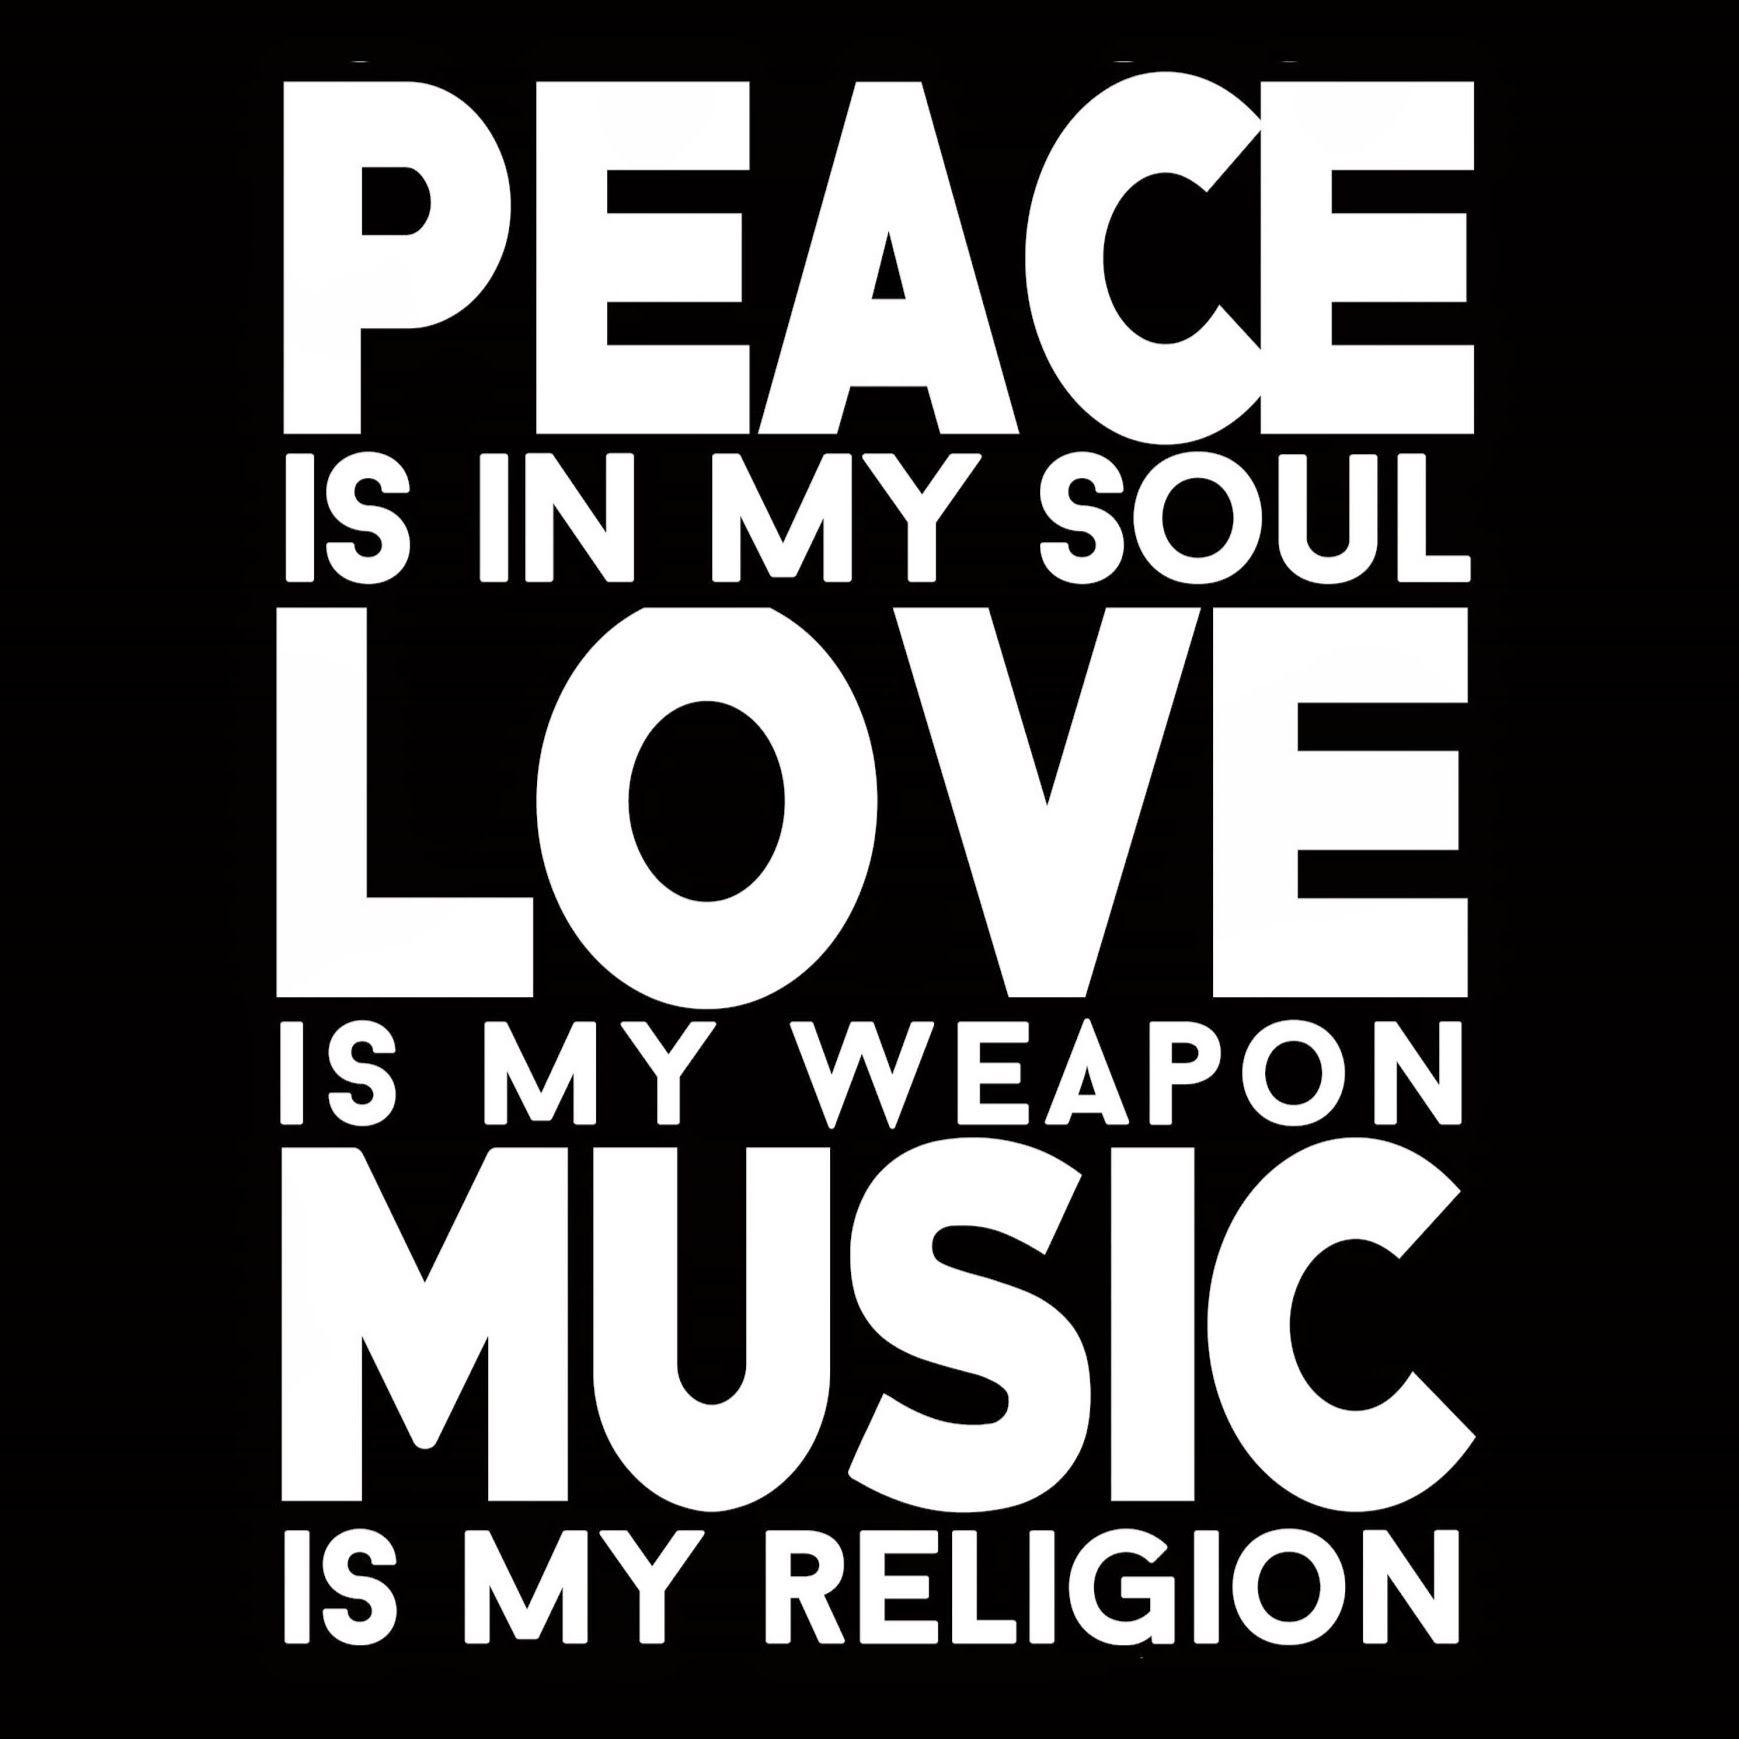 Hd Wallpapers Of Peace Love Music | Newwallpapers.org